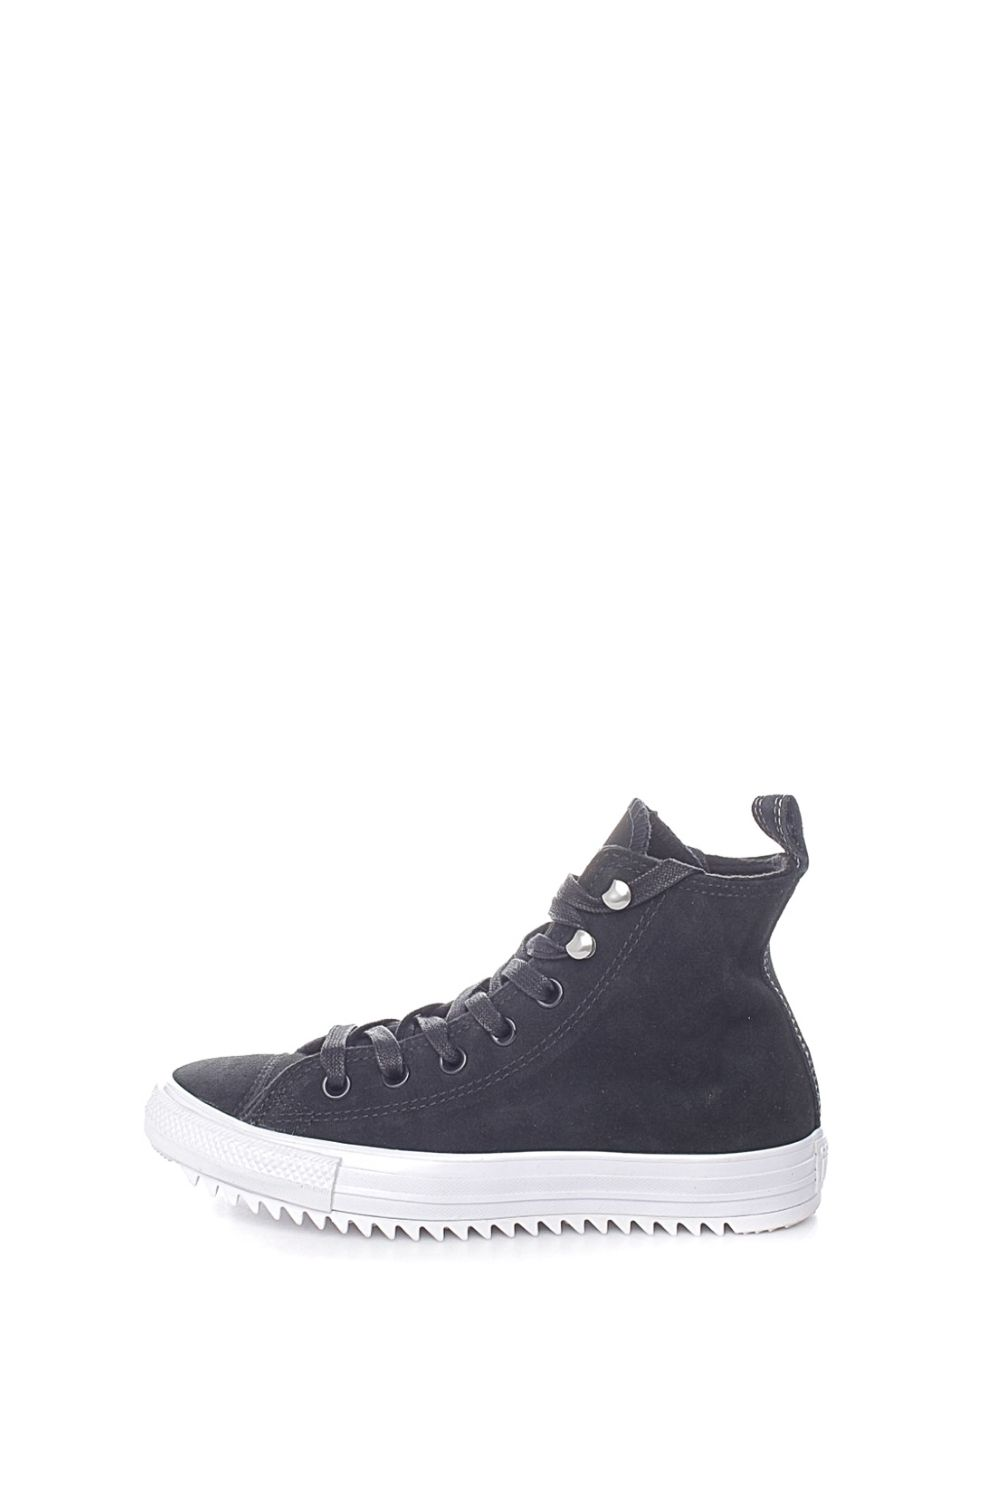 CONVERSE – Γυναικεία sneakers CONVERSE CHUCK TAYLOR ALL STAR HIKER μαύρα